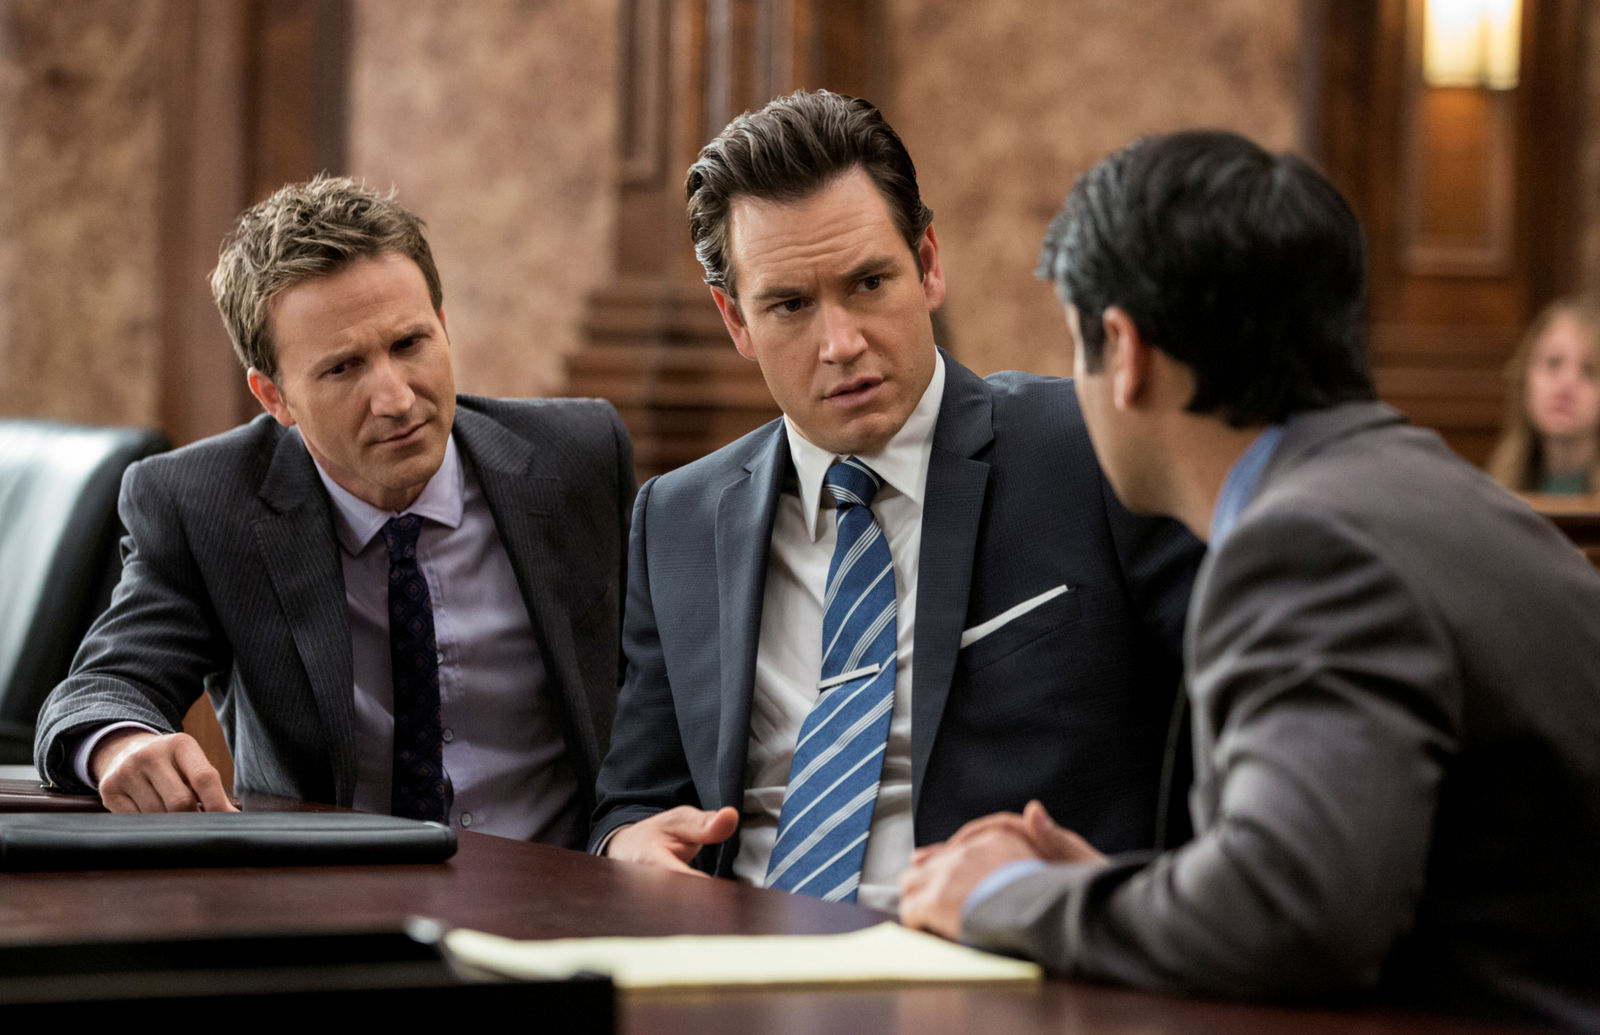 Franklin and Bash Season 3 Finale Mark Paul Gosselaar and Breckin Meyer Franklin and Bash Take On Controntations in New Season 3 Finale Clip